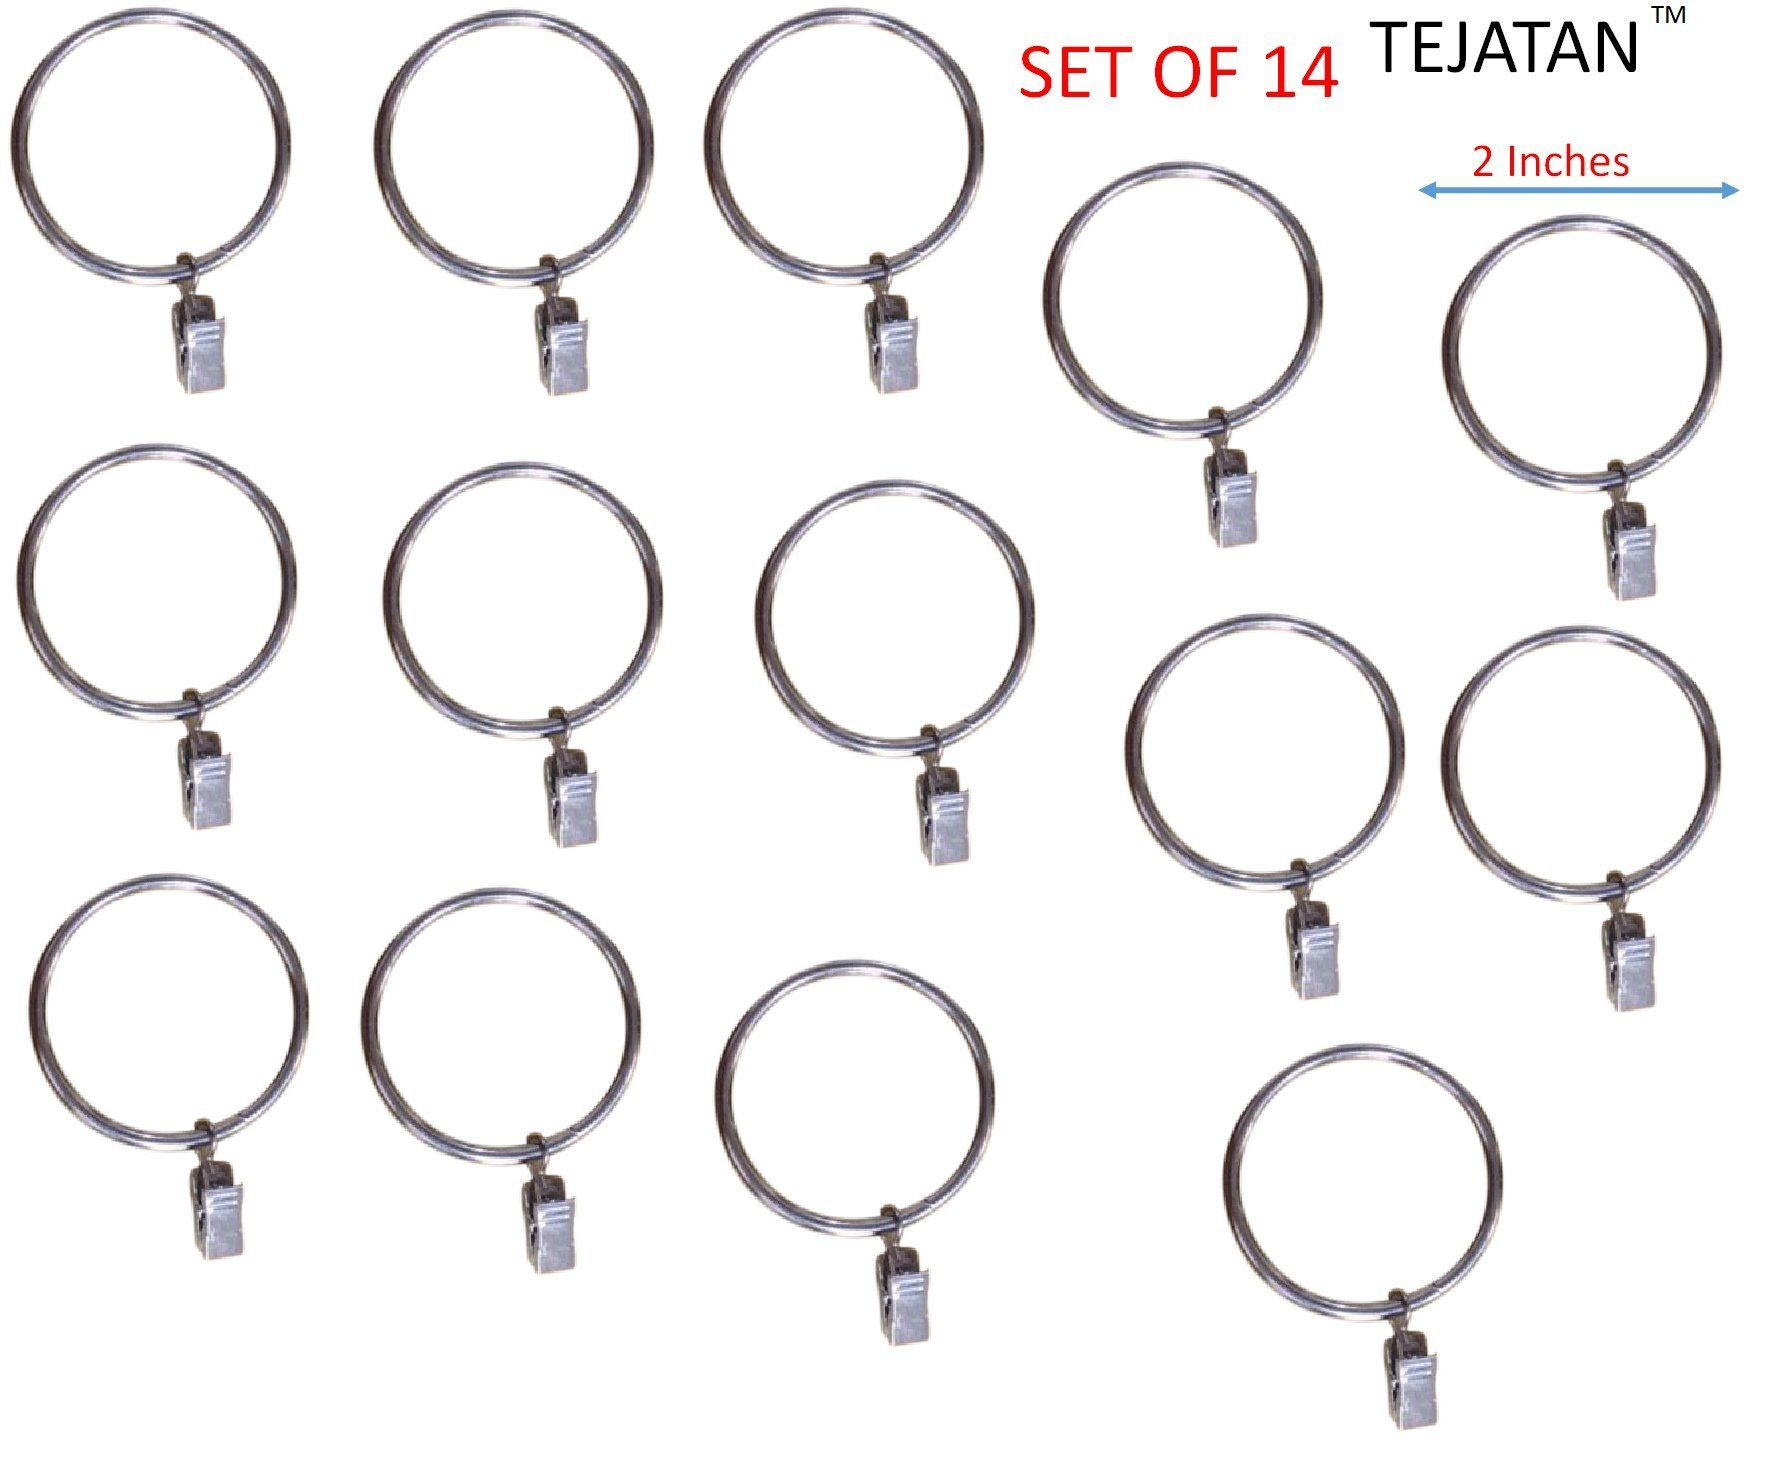 2 Inch Metal Curtain Rings With Clips And Eyelets Silver Set Of